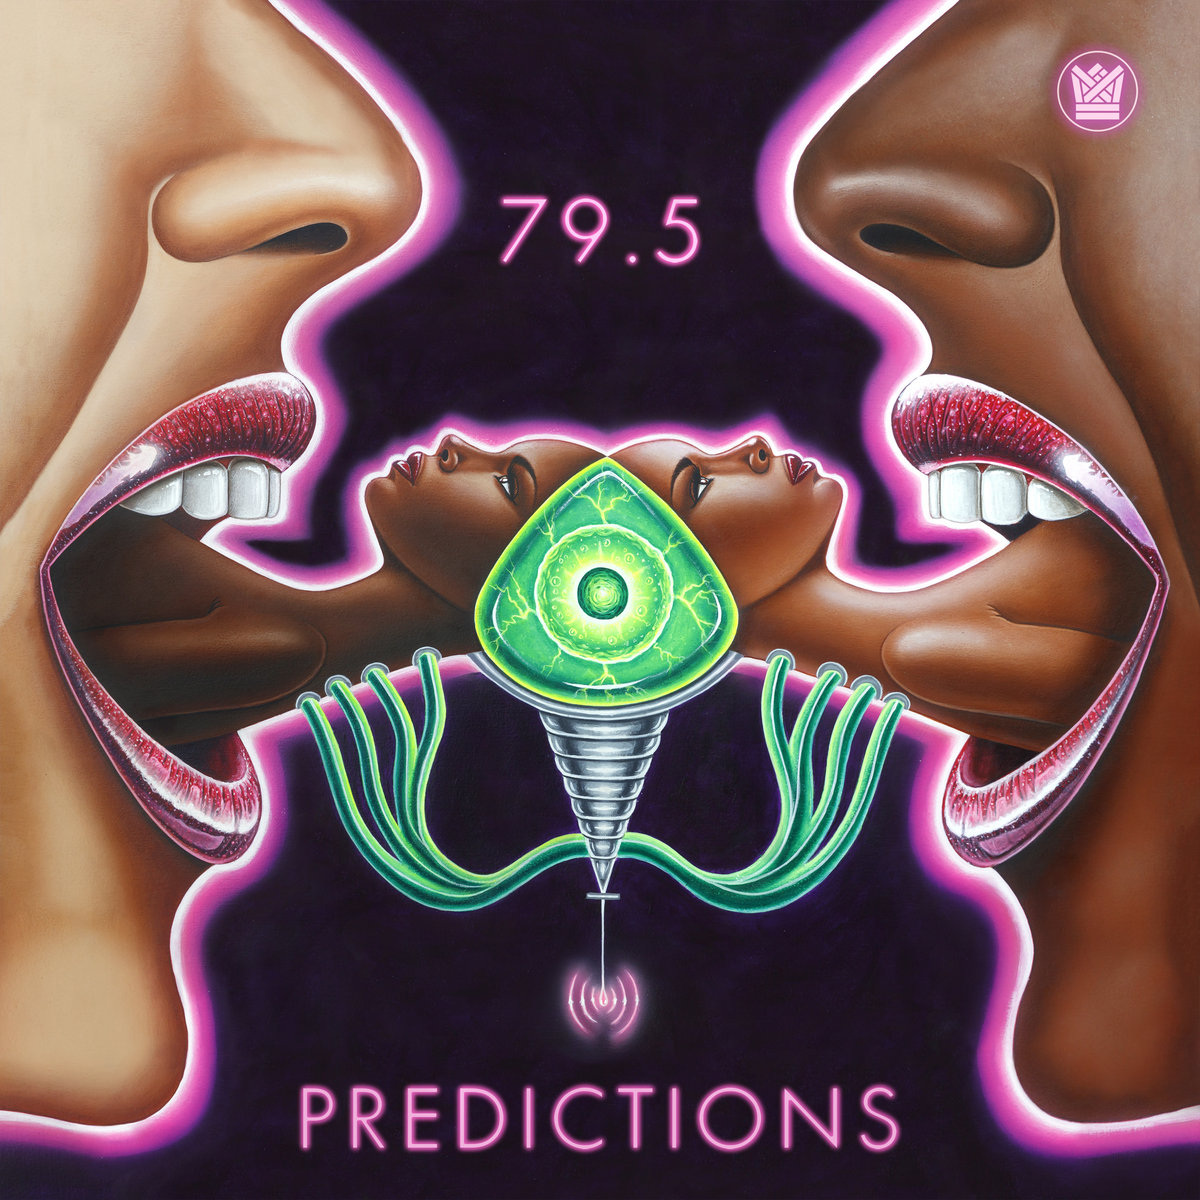 Image result for predictions 79.5